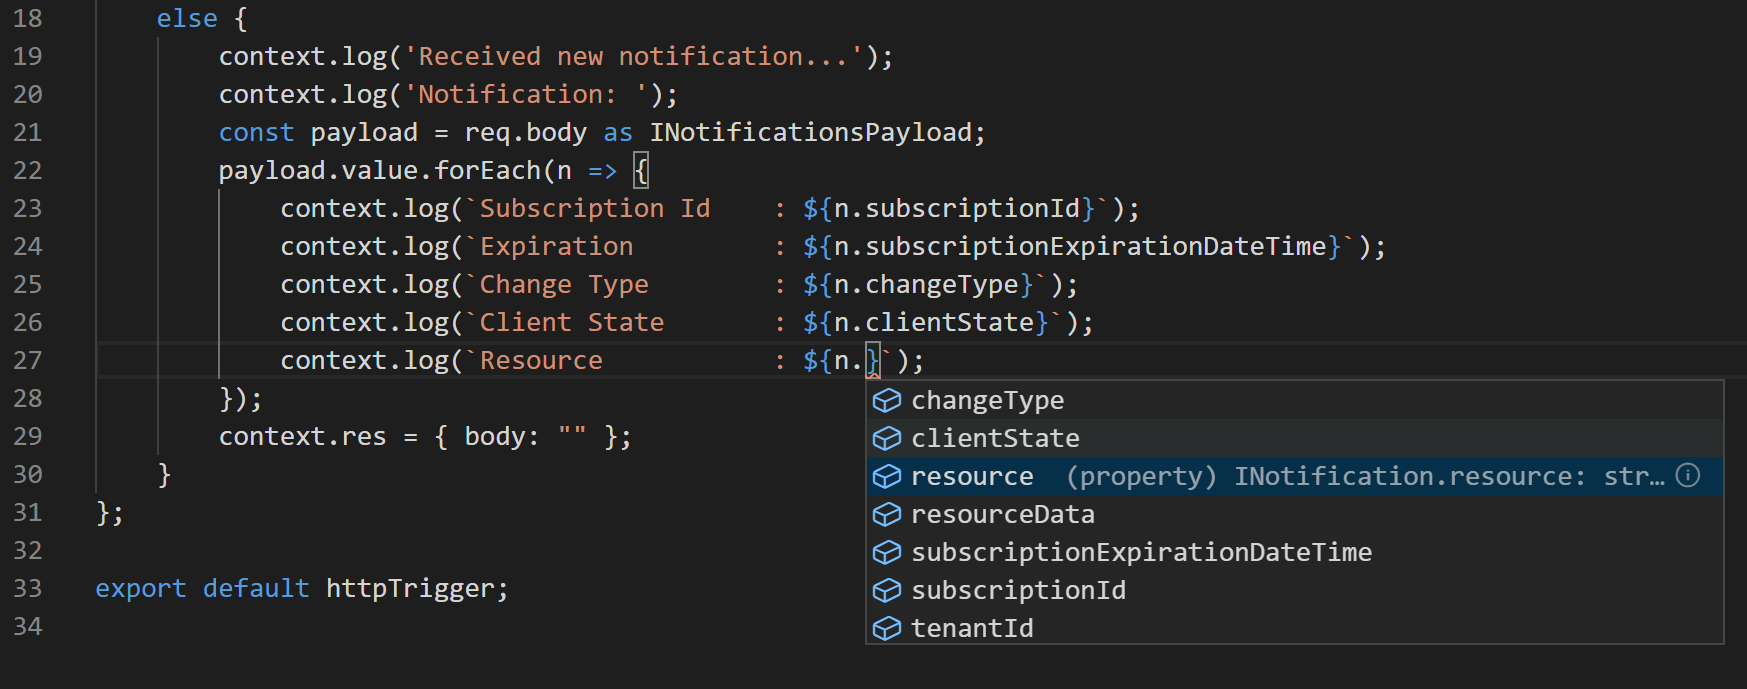 vscode-typescript-intelli.png